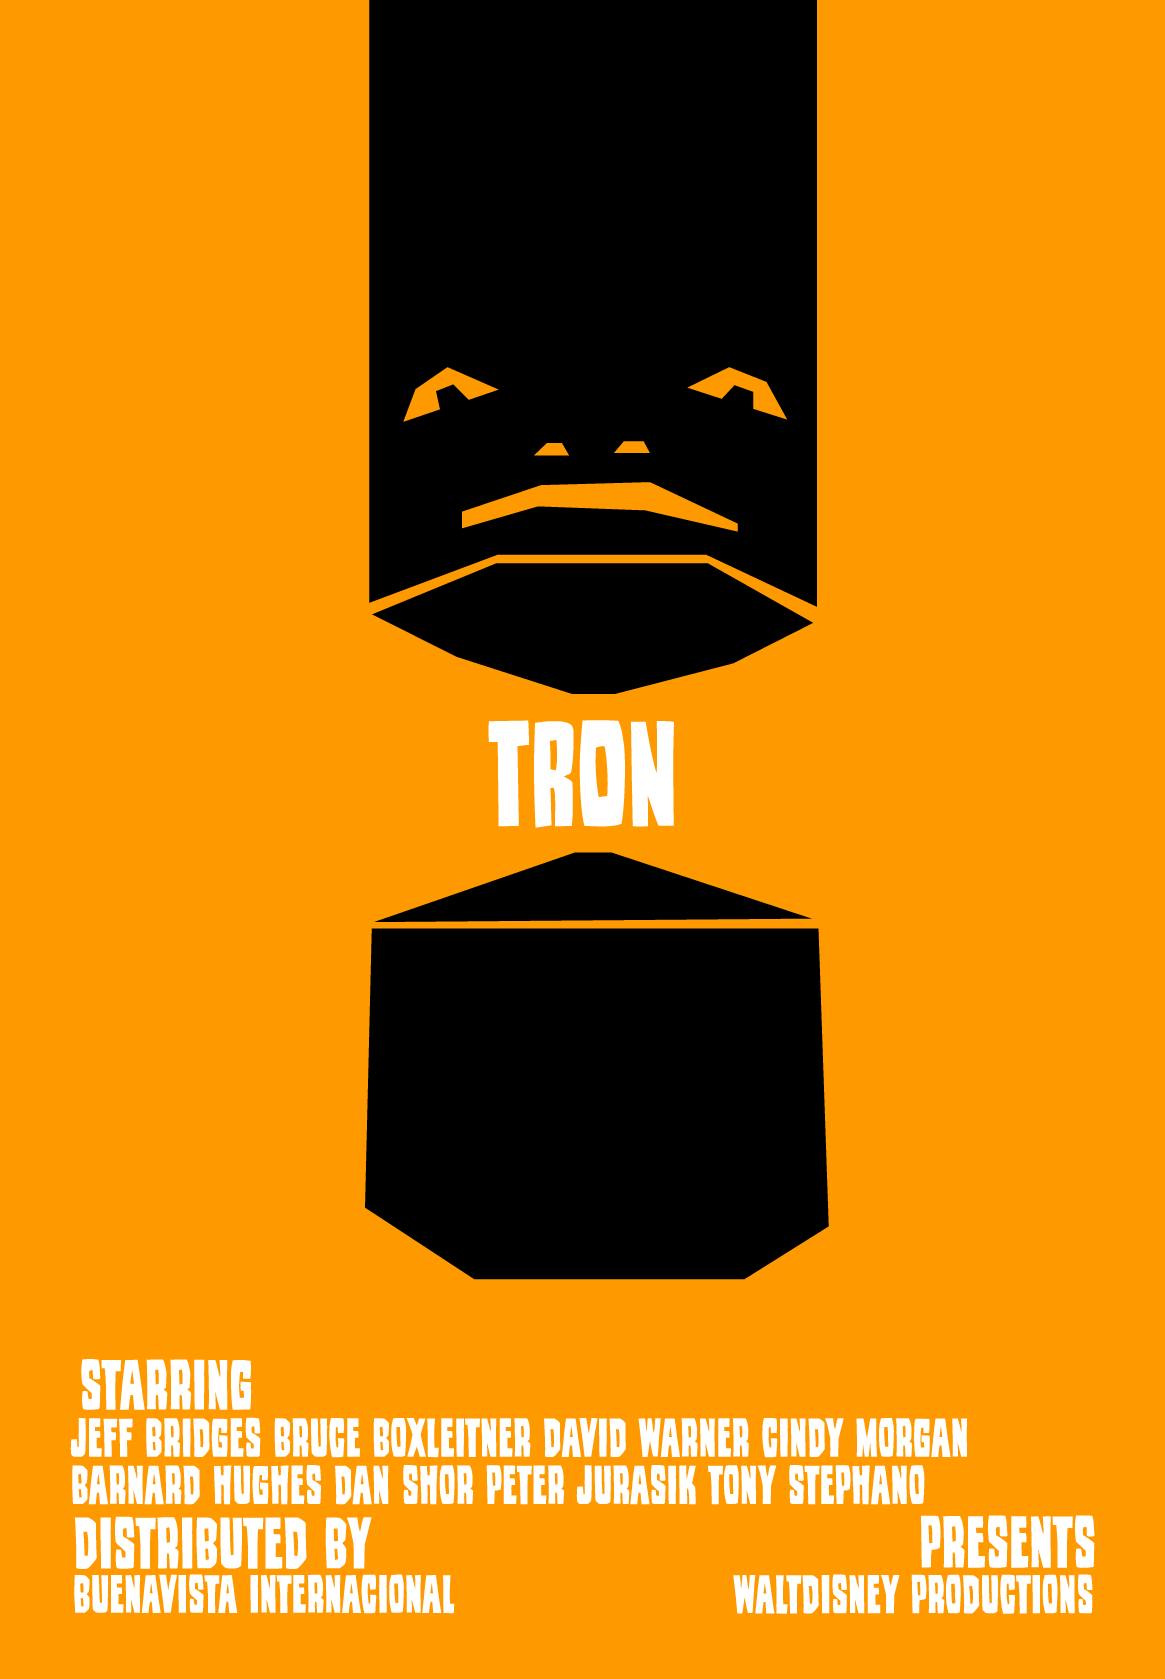 tron_posters_20210006